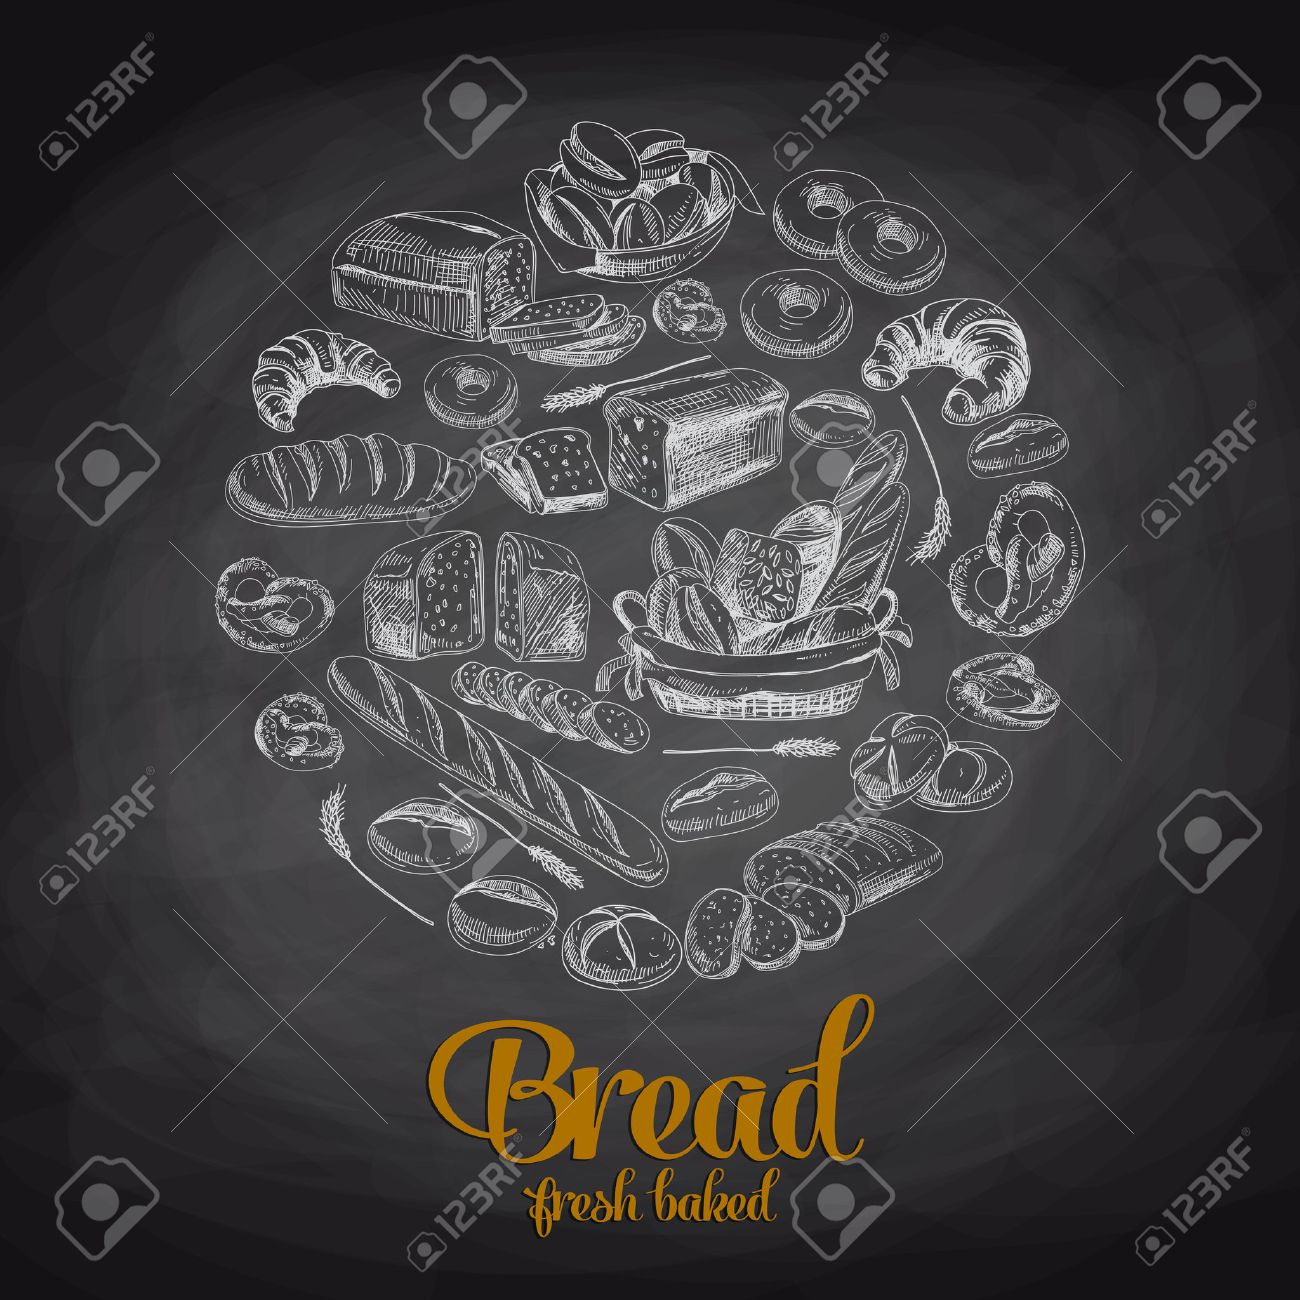 Hand Drawn Vector Illustration With Bread Sketch Chalkboard Stock